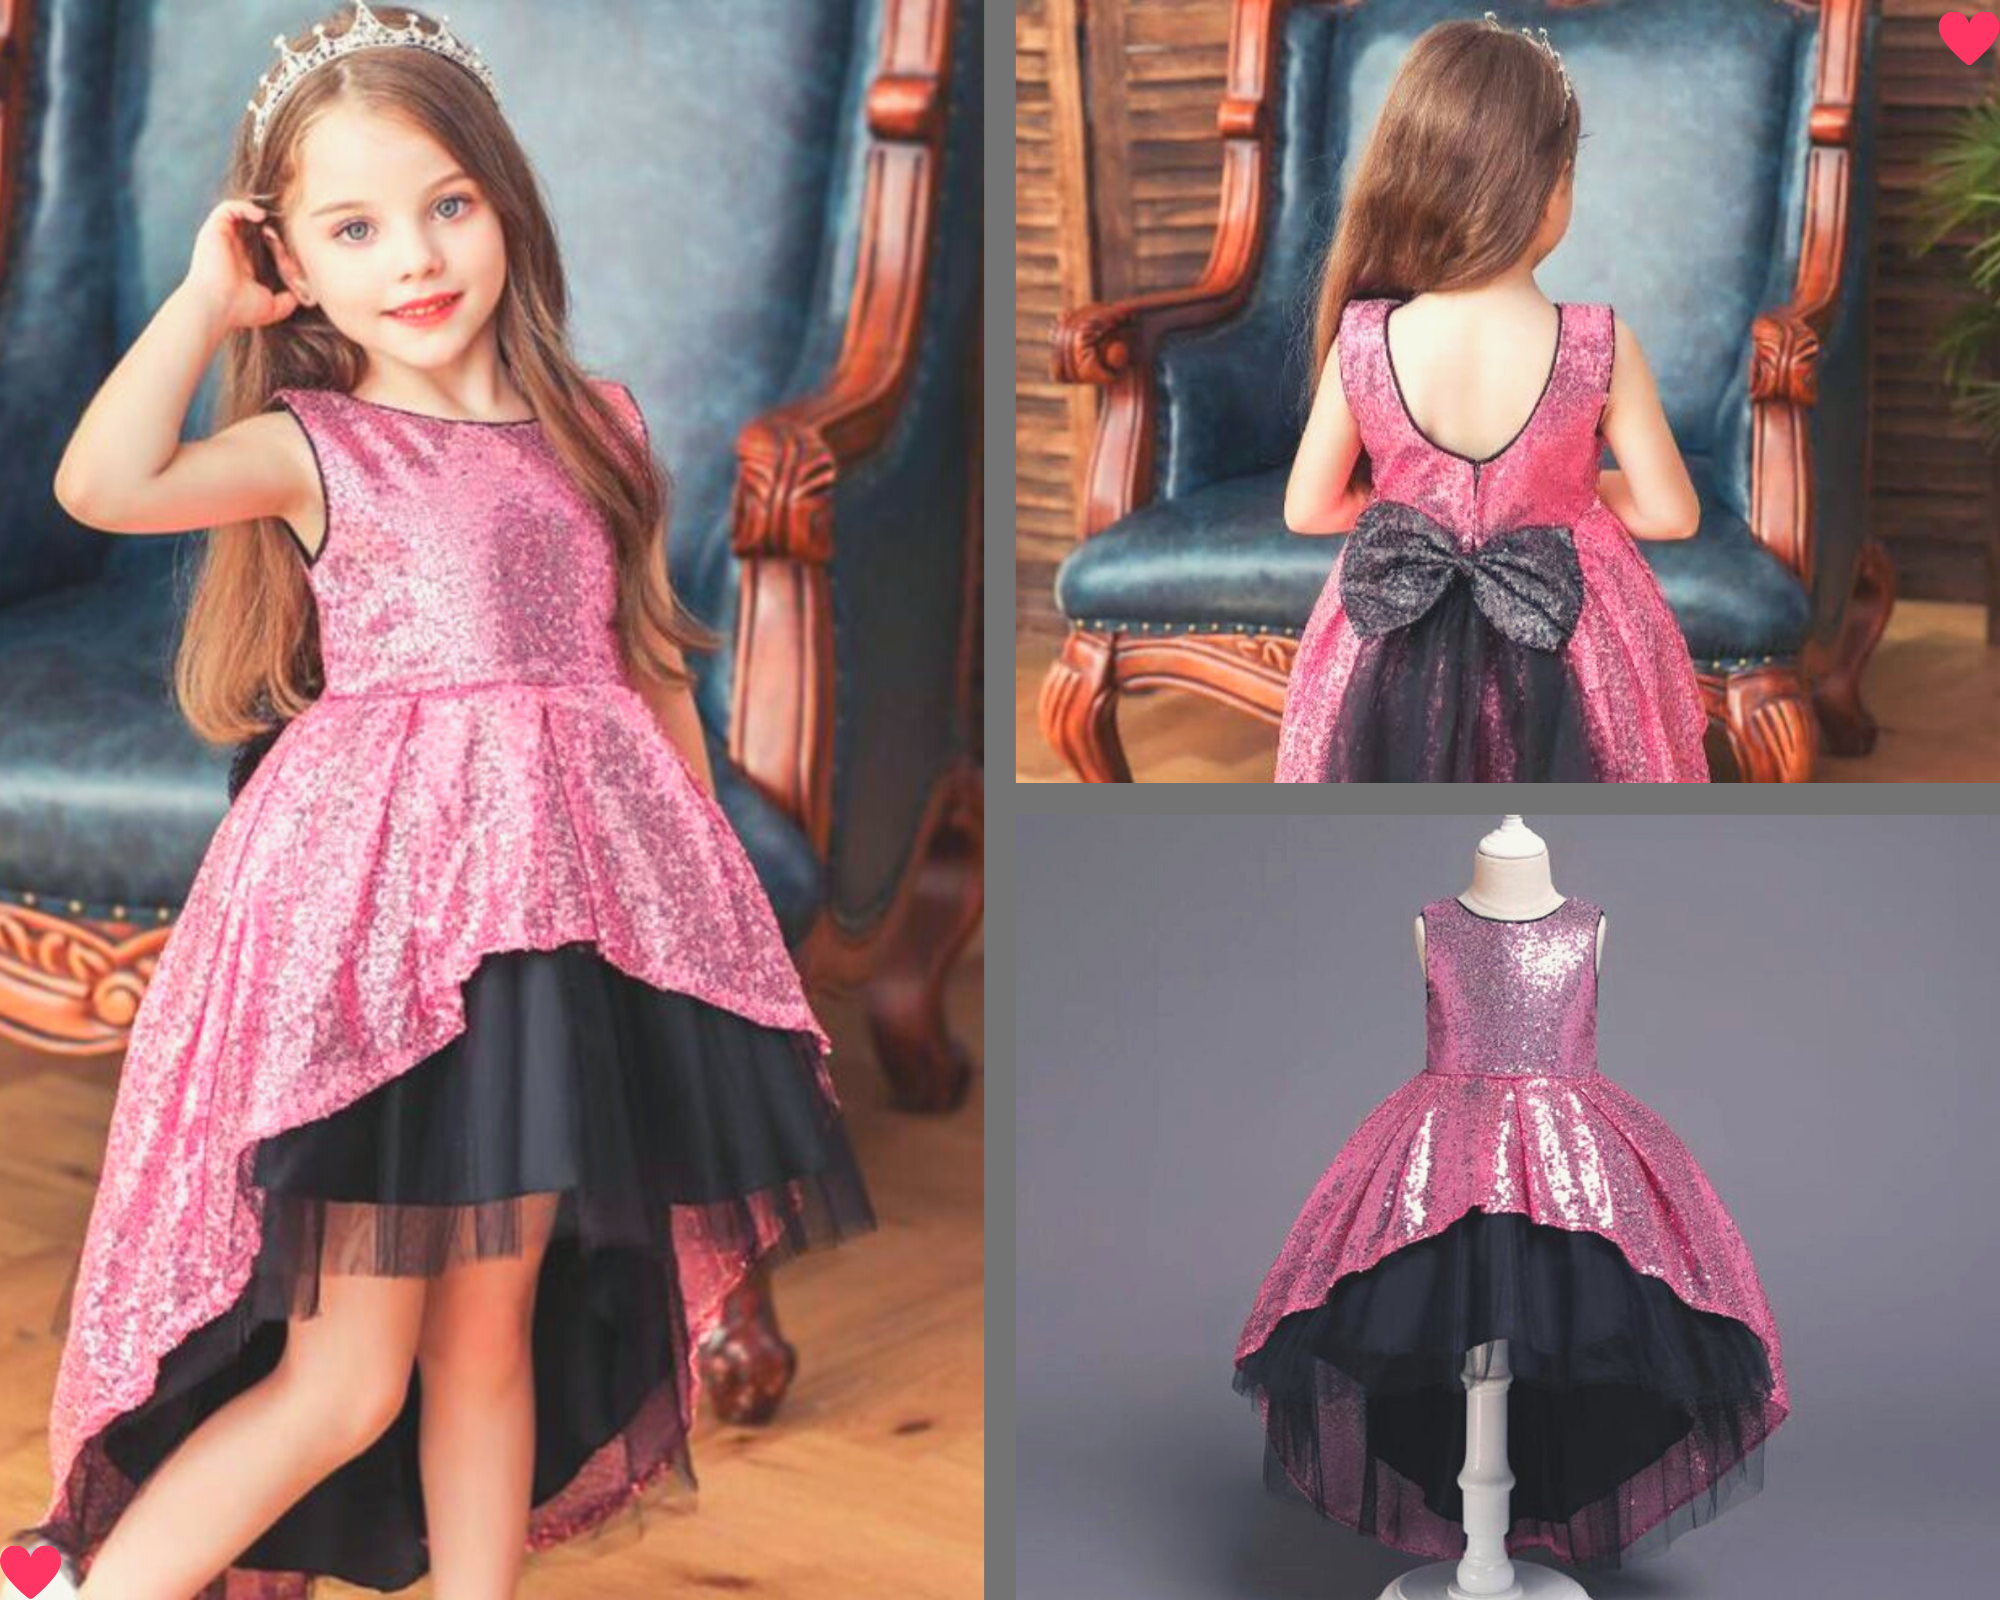 Ins Kids Girls Bowknot Lace Dress long sleeve Princess Party Dresses for 2-7Y